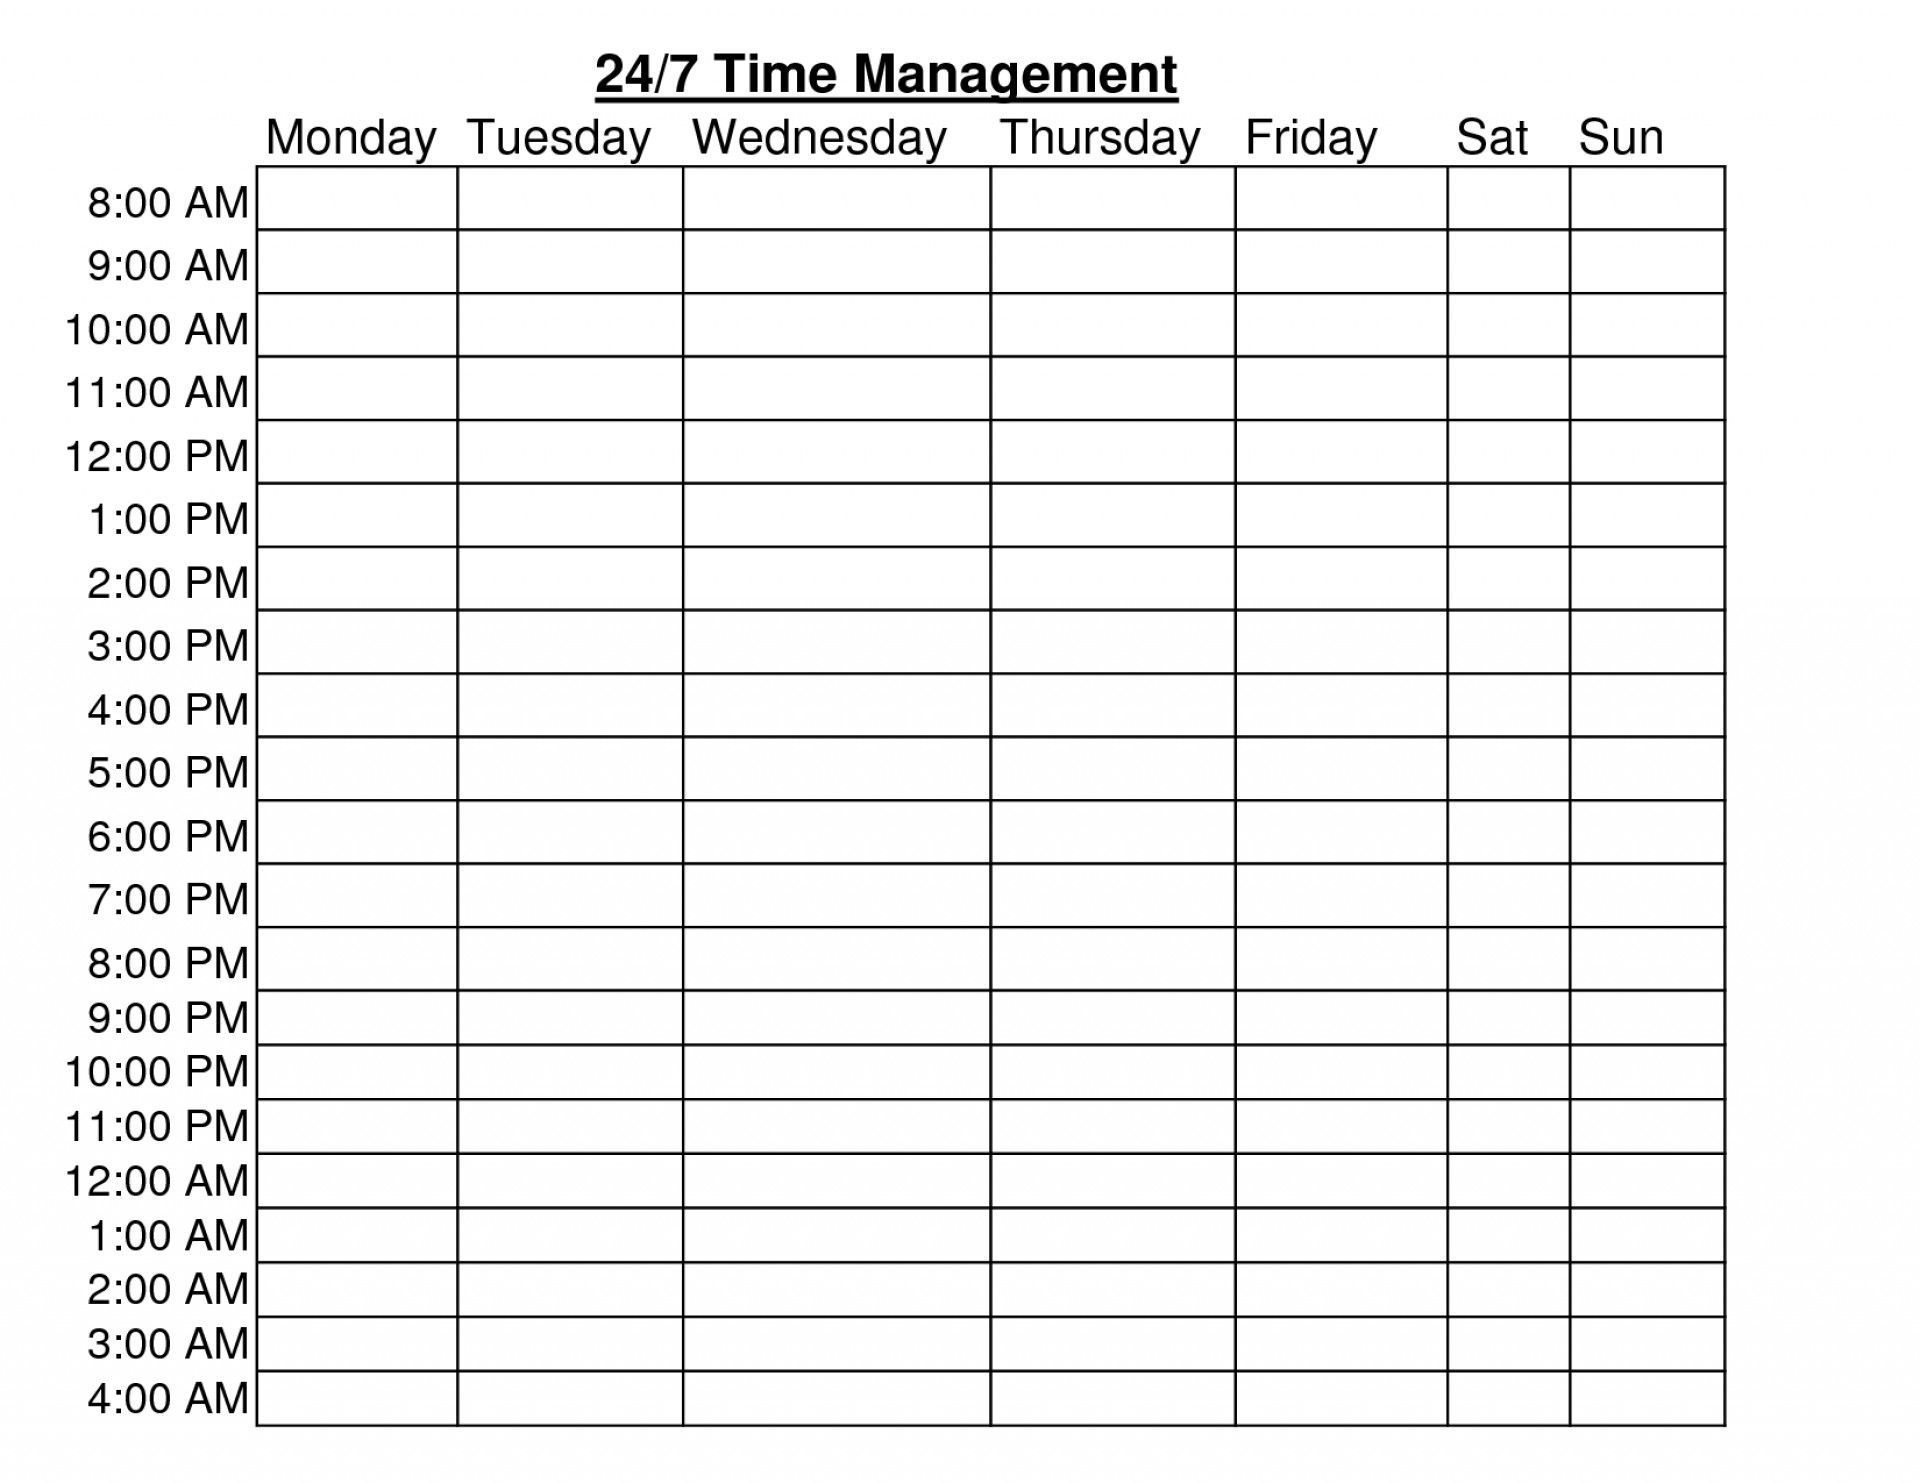 002 Hr Schedule Template Ideas 20Weekly Free Printable Chainimage with regard to 24 Hour Daily Agenda Printable